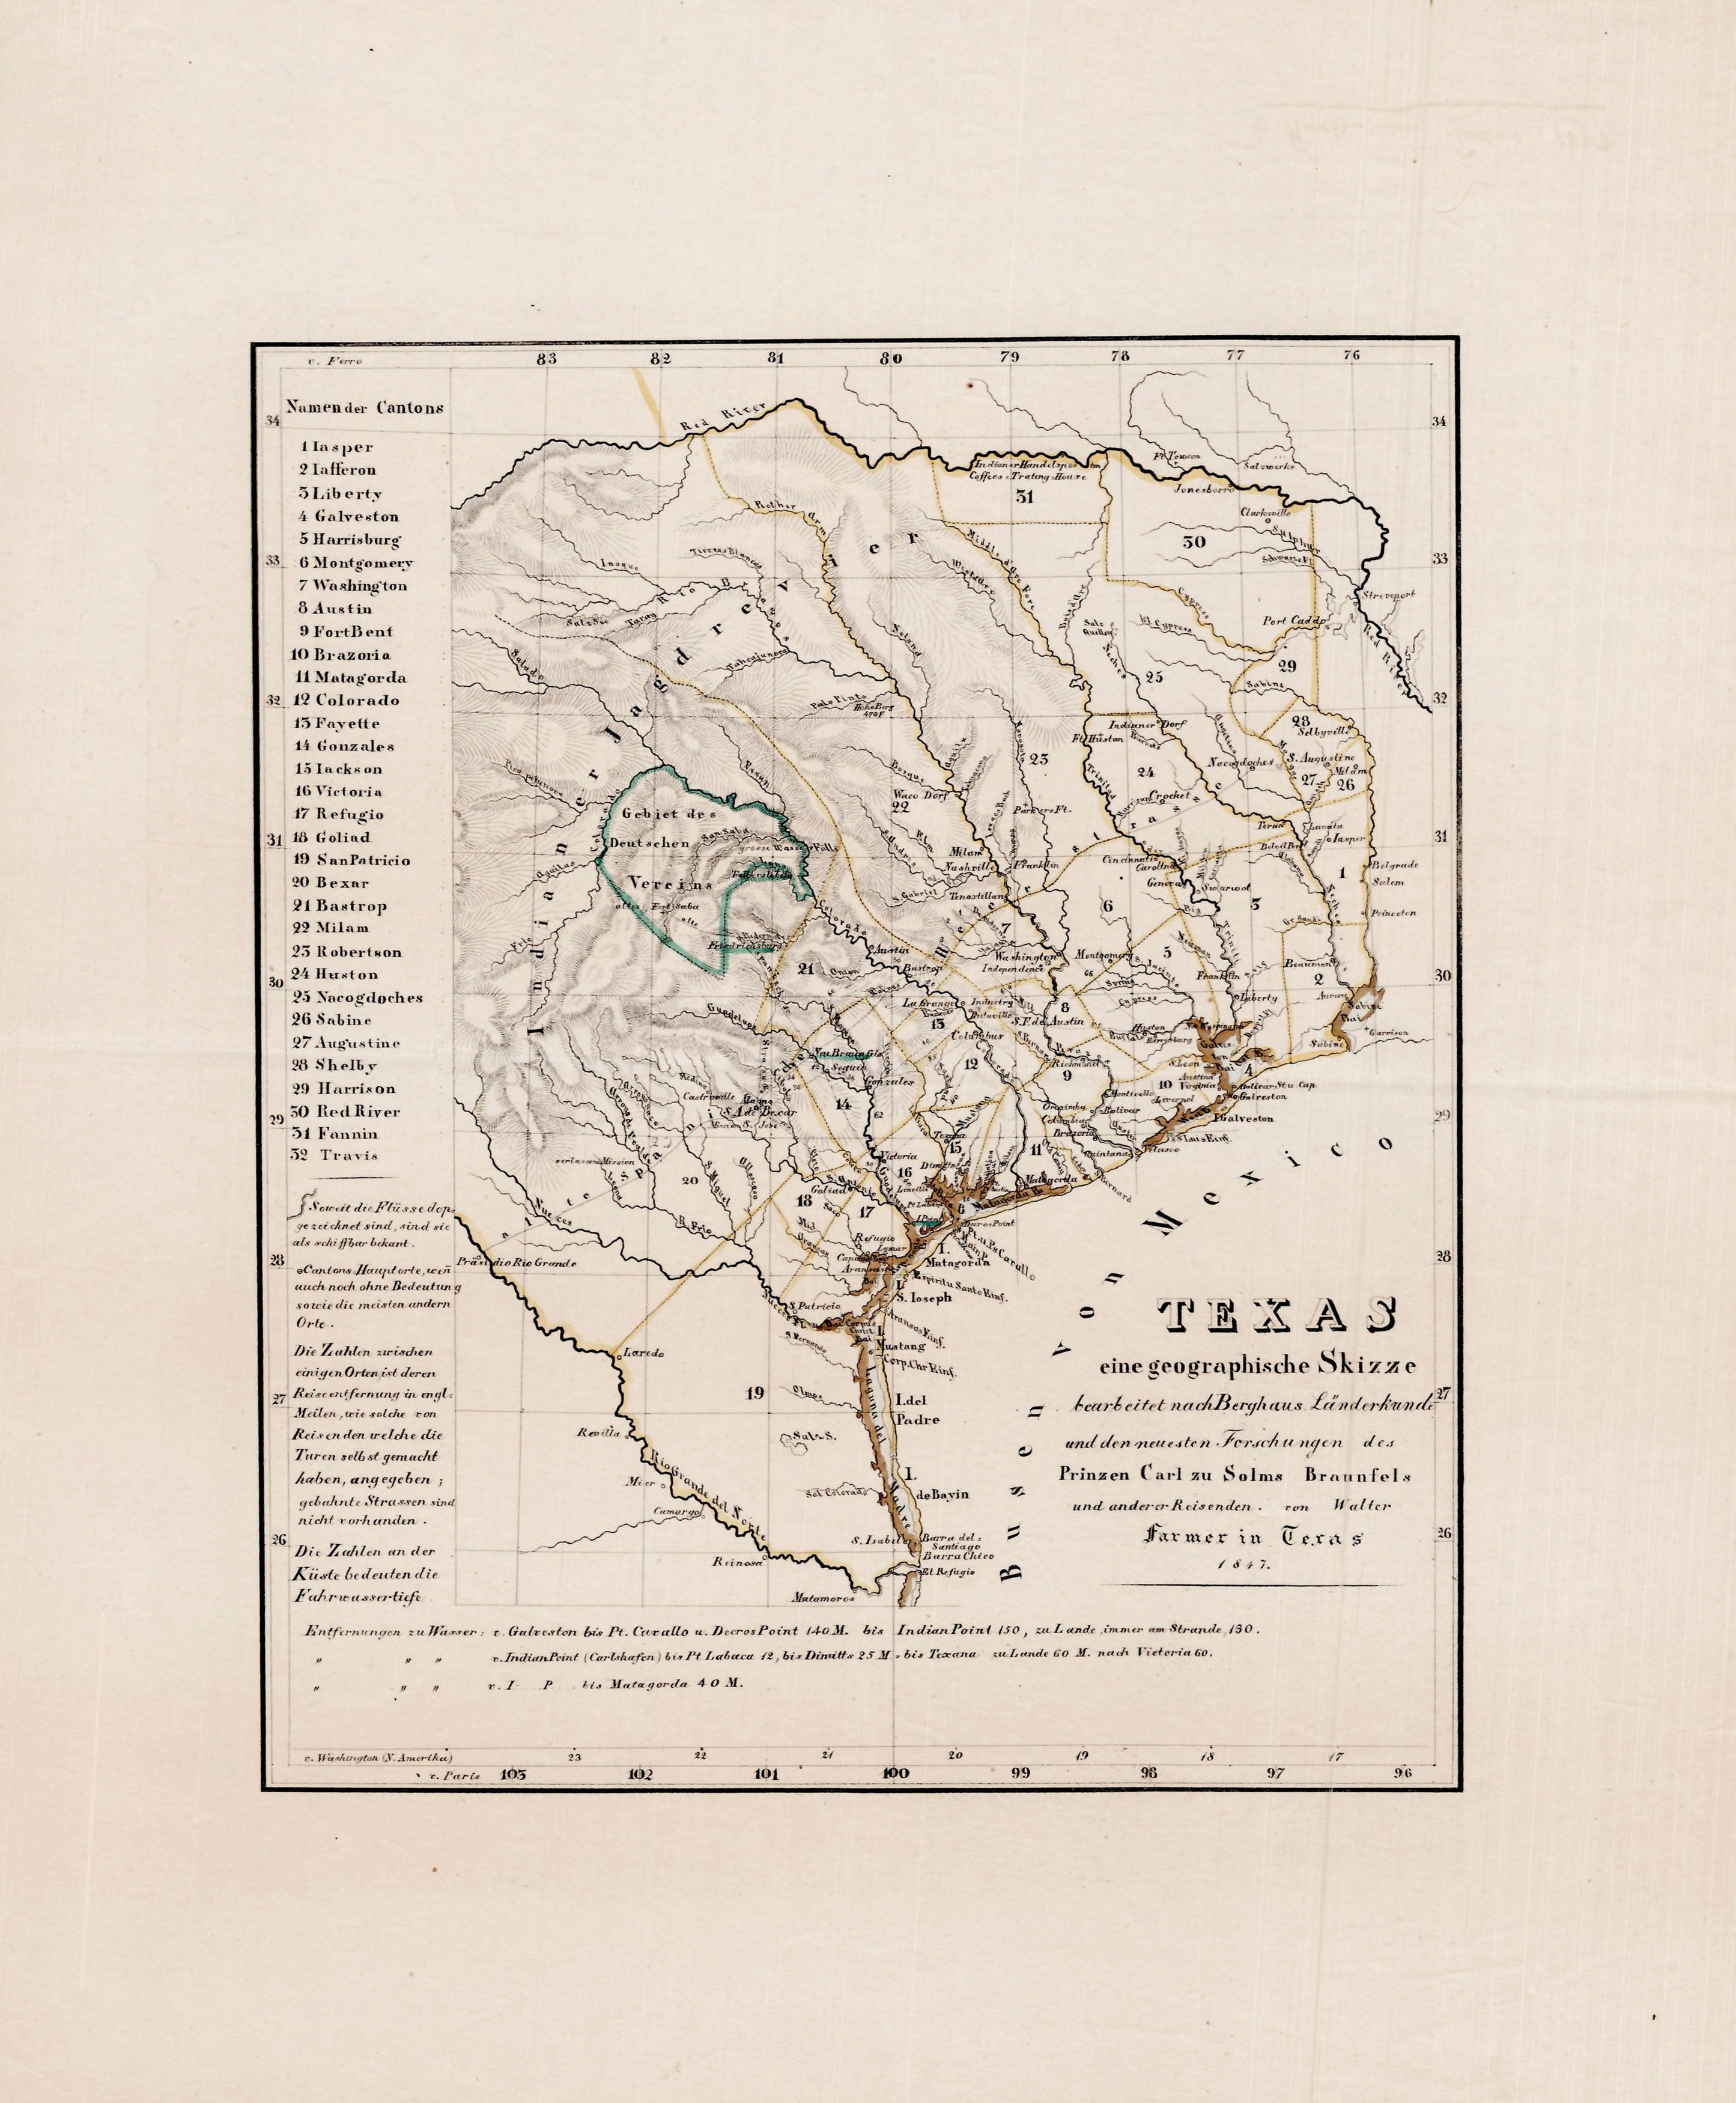 1847 Adelsverein map of Texas - Rare & Antique Maps on